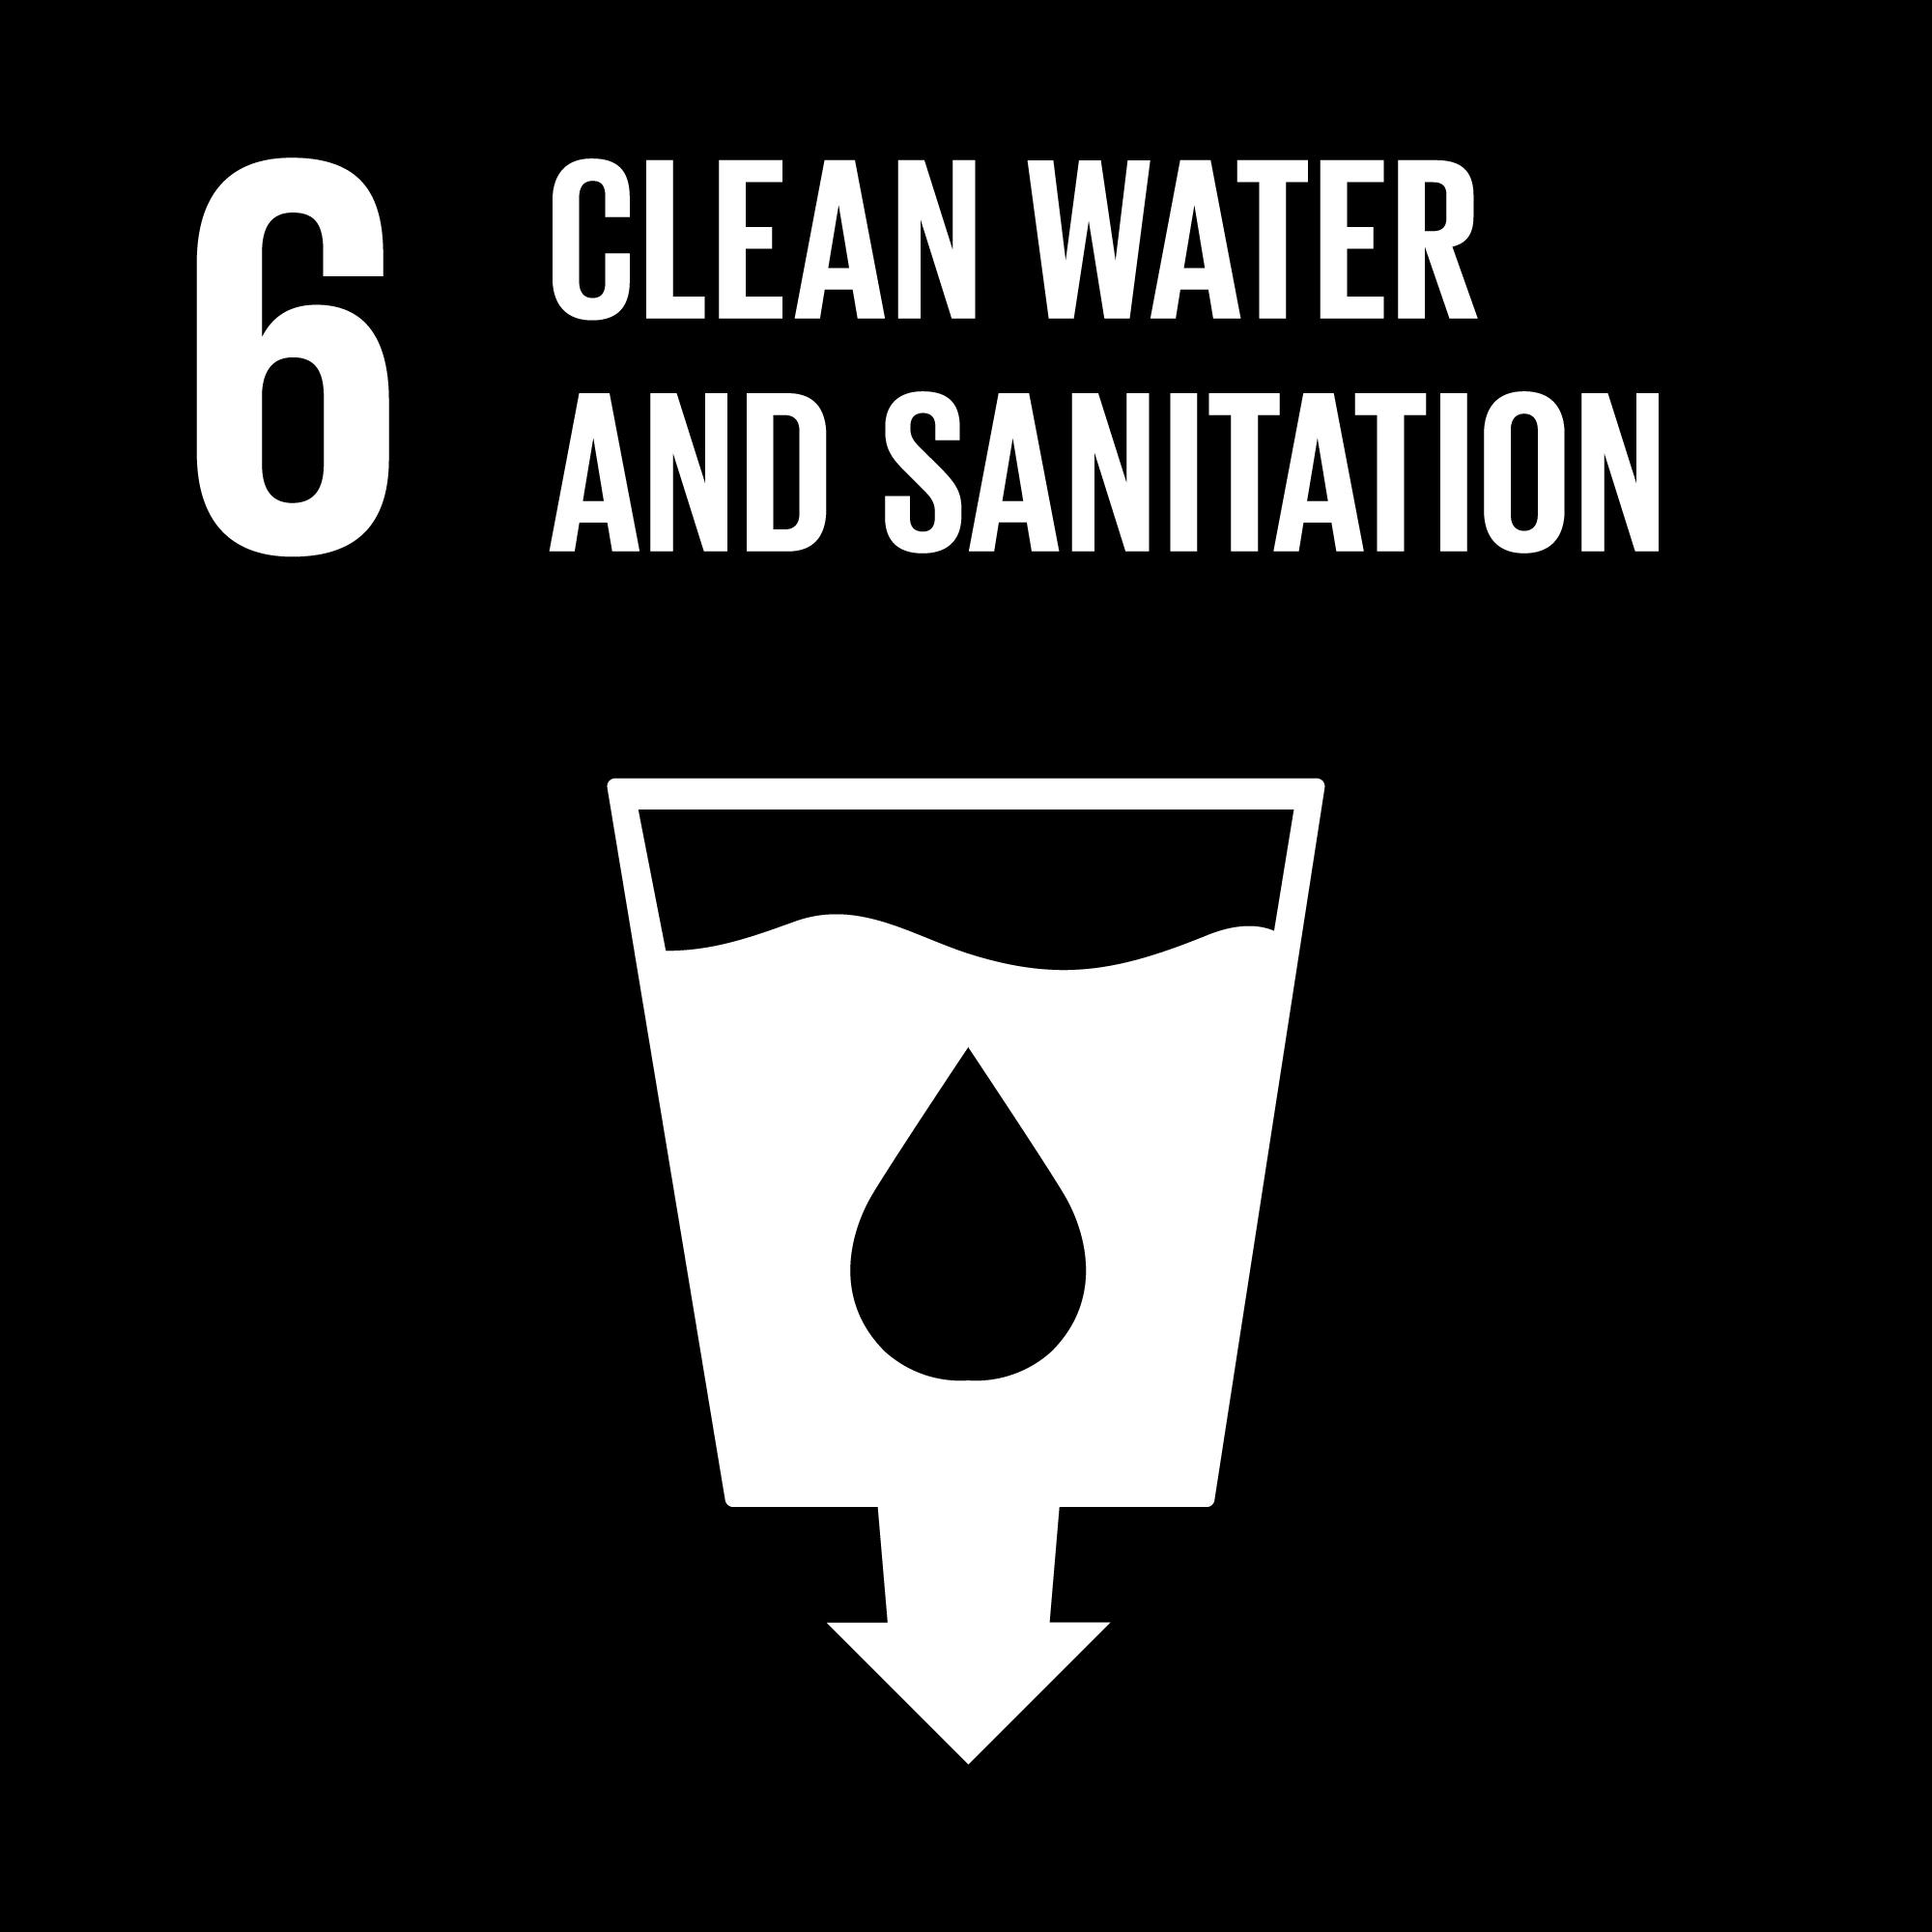 Sustainable Development Goals - 6 - Clean Water and Sanitation